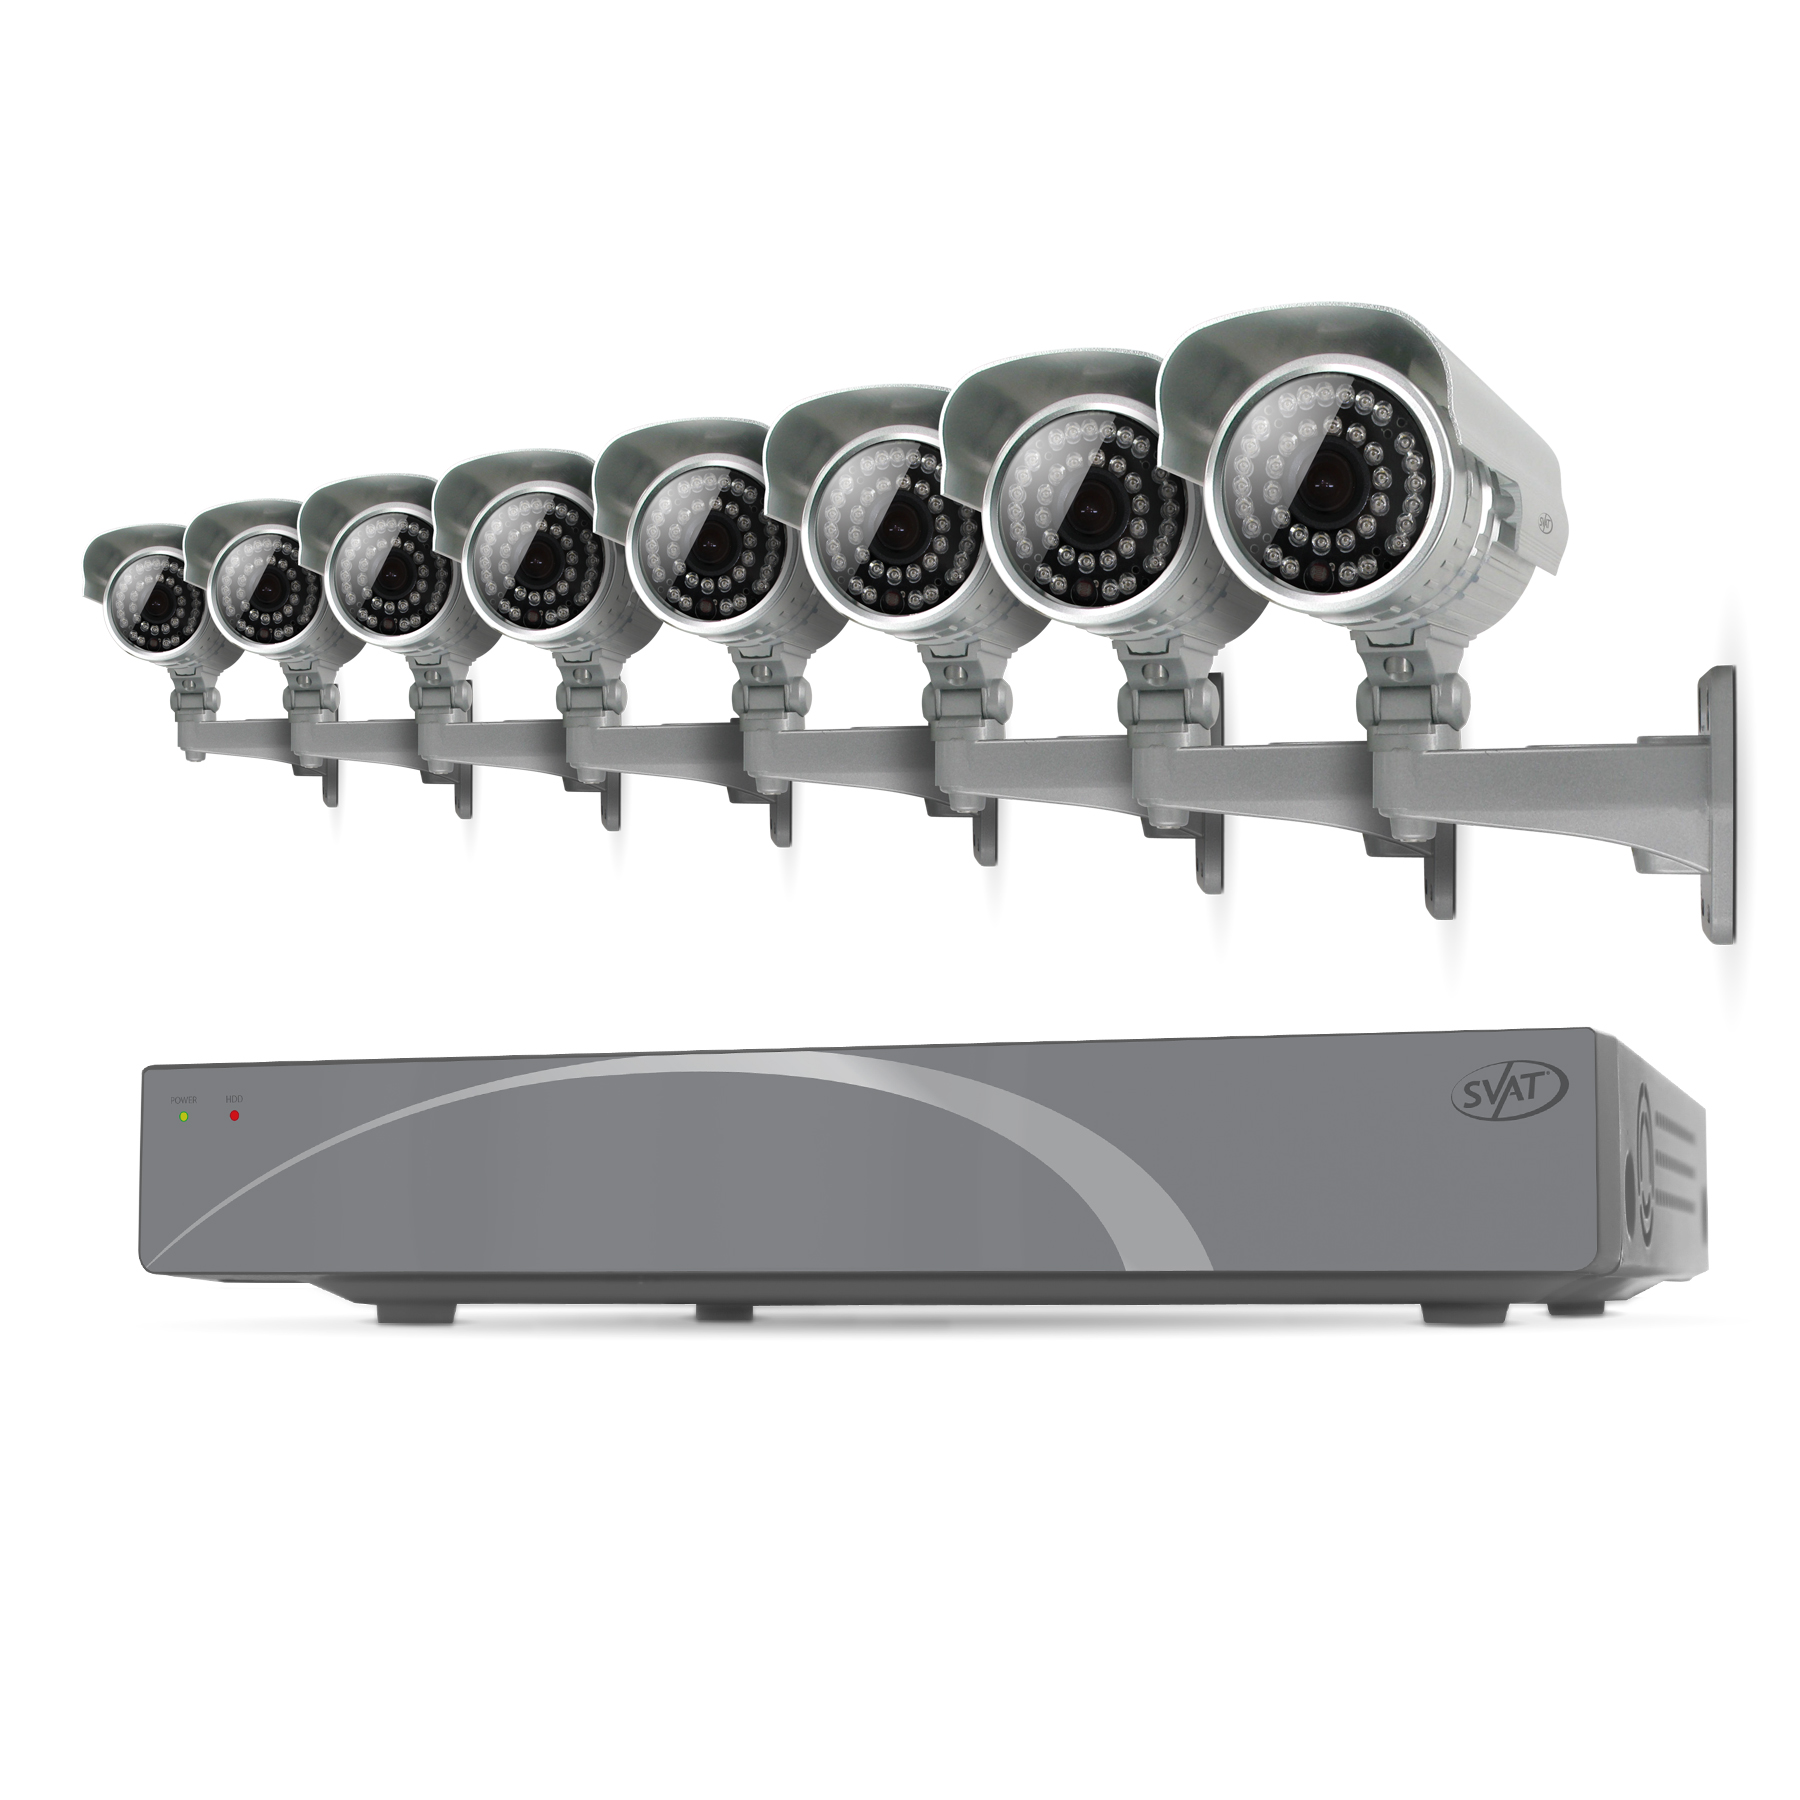 11031 - SVAT 8CH Smart Security DVR with 8 100ft Night Vision Cameras 500 GB - 11031